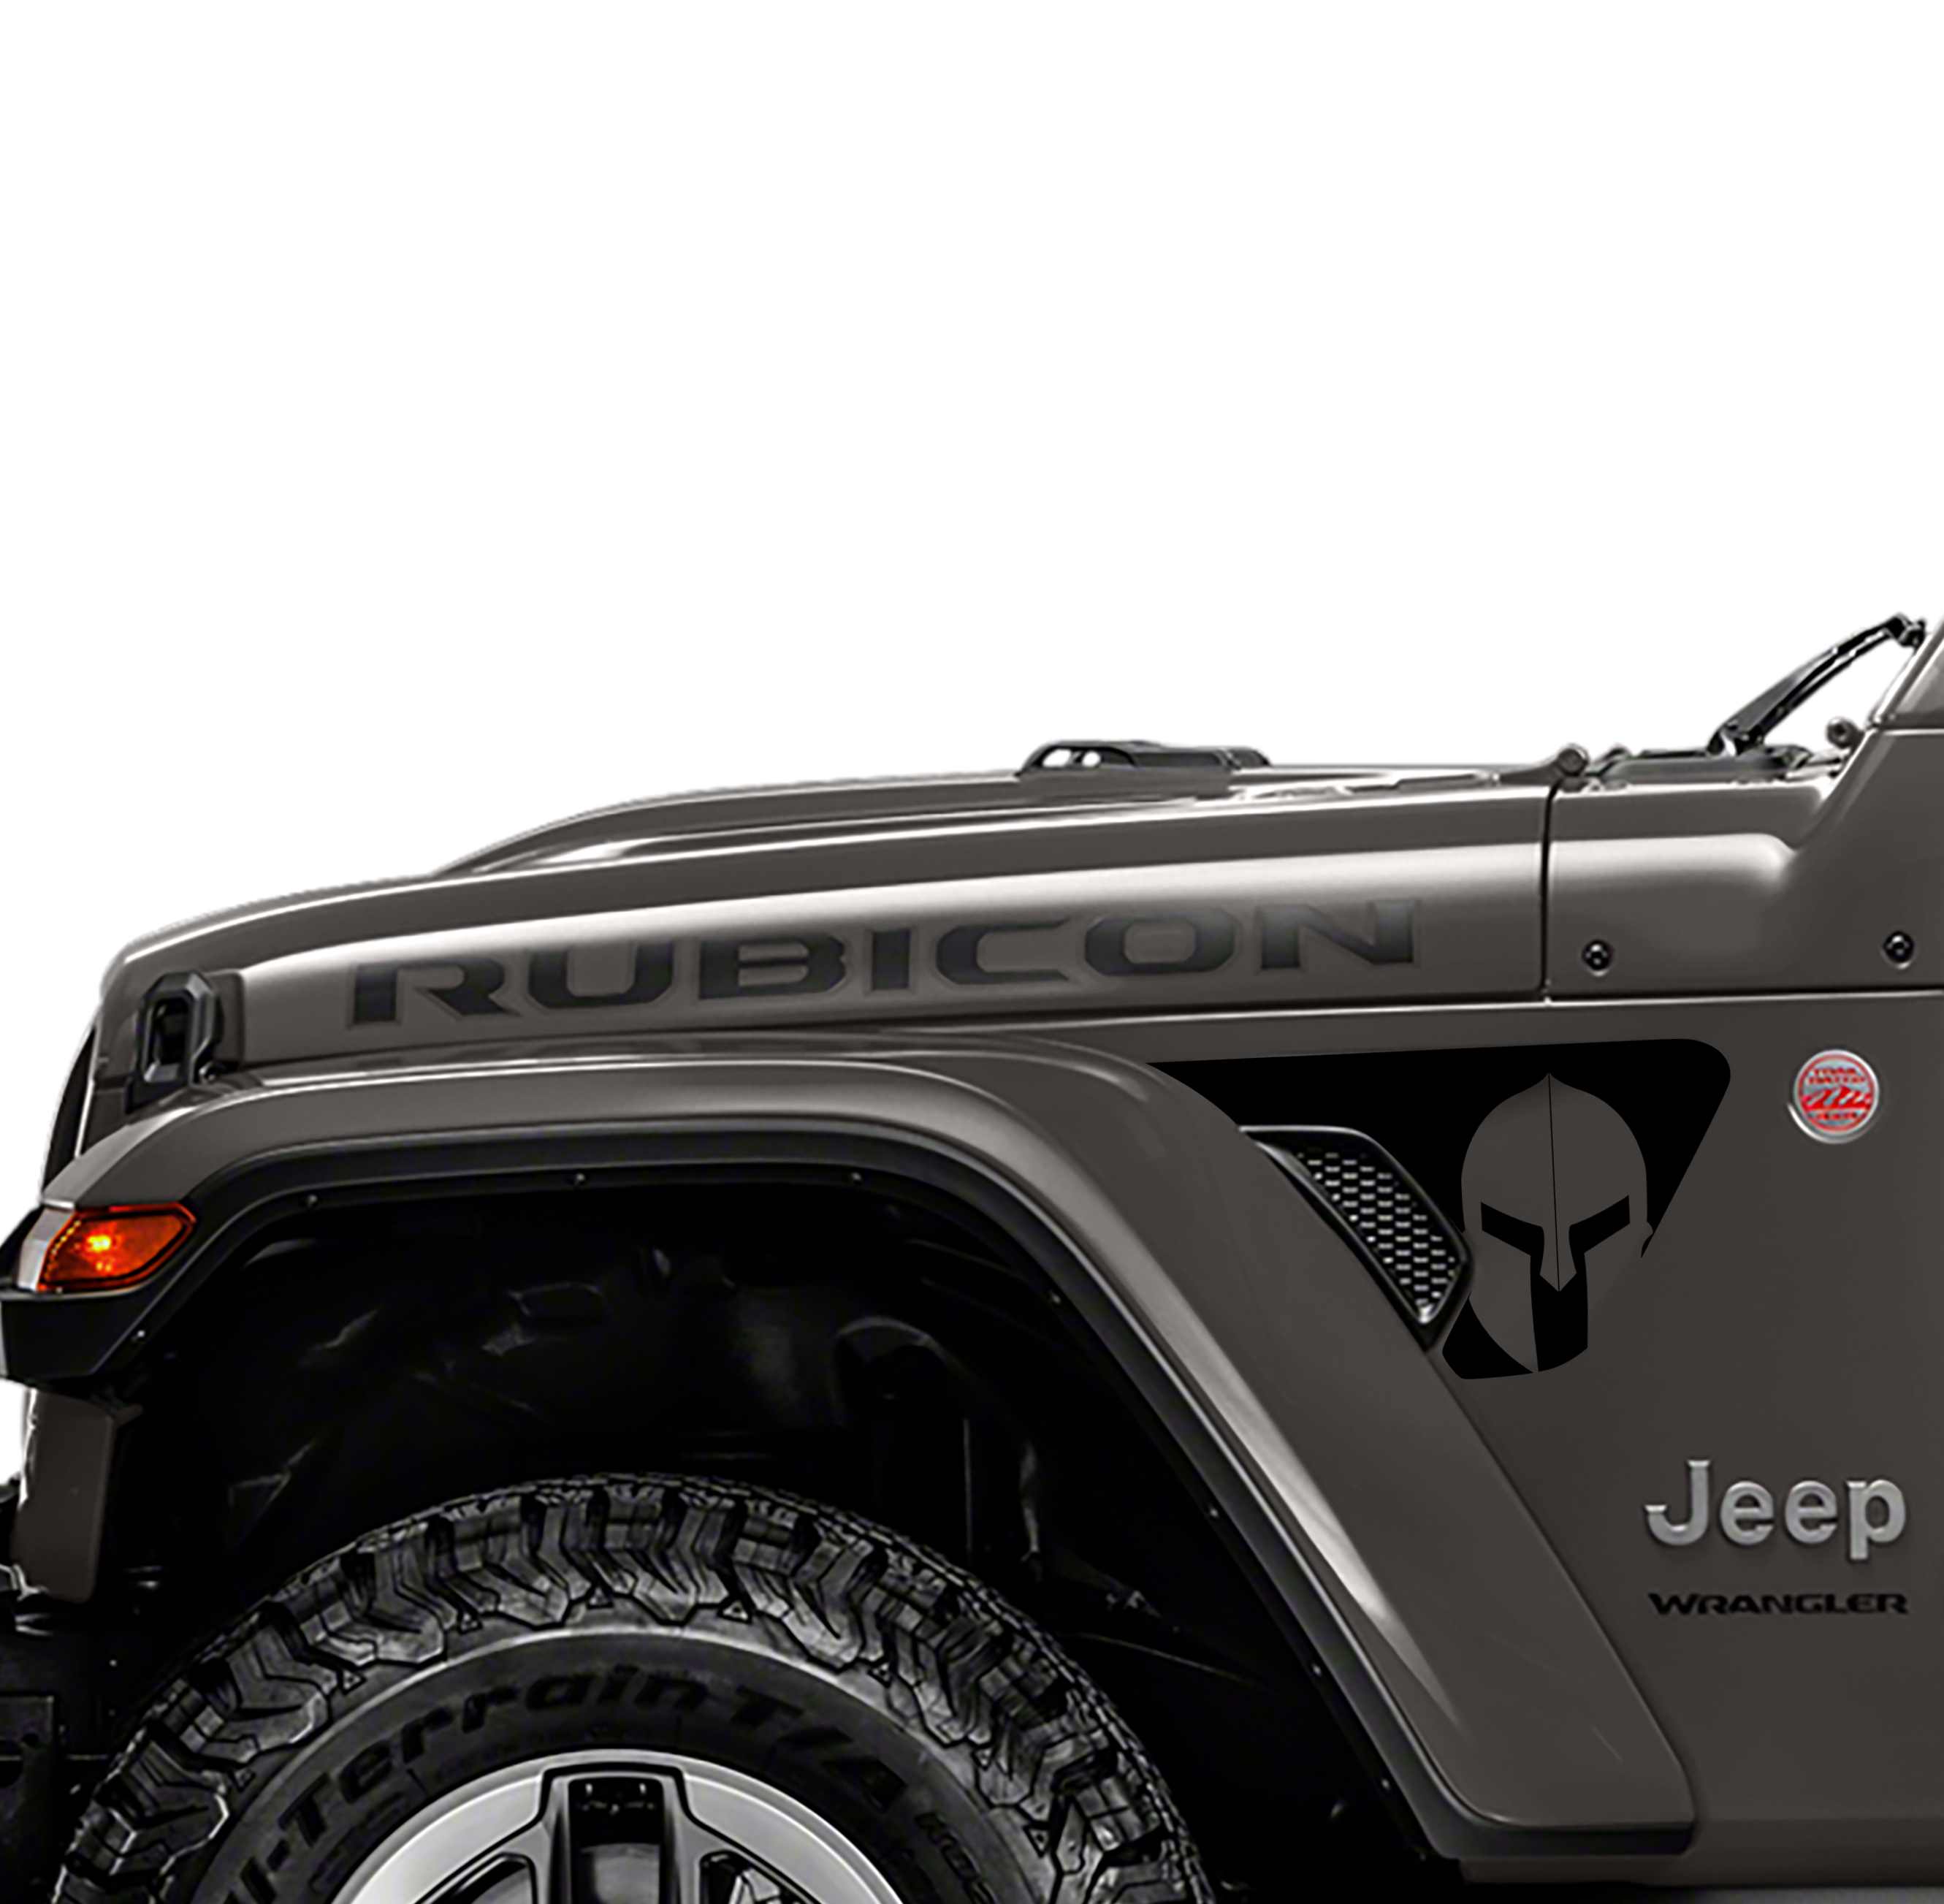 Jeep Wrangler 2018 JL JLU Front Fender Spartan Gladiator Helmet Vent Accent 2pc Vinyl Decal Graphic